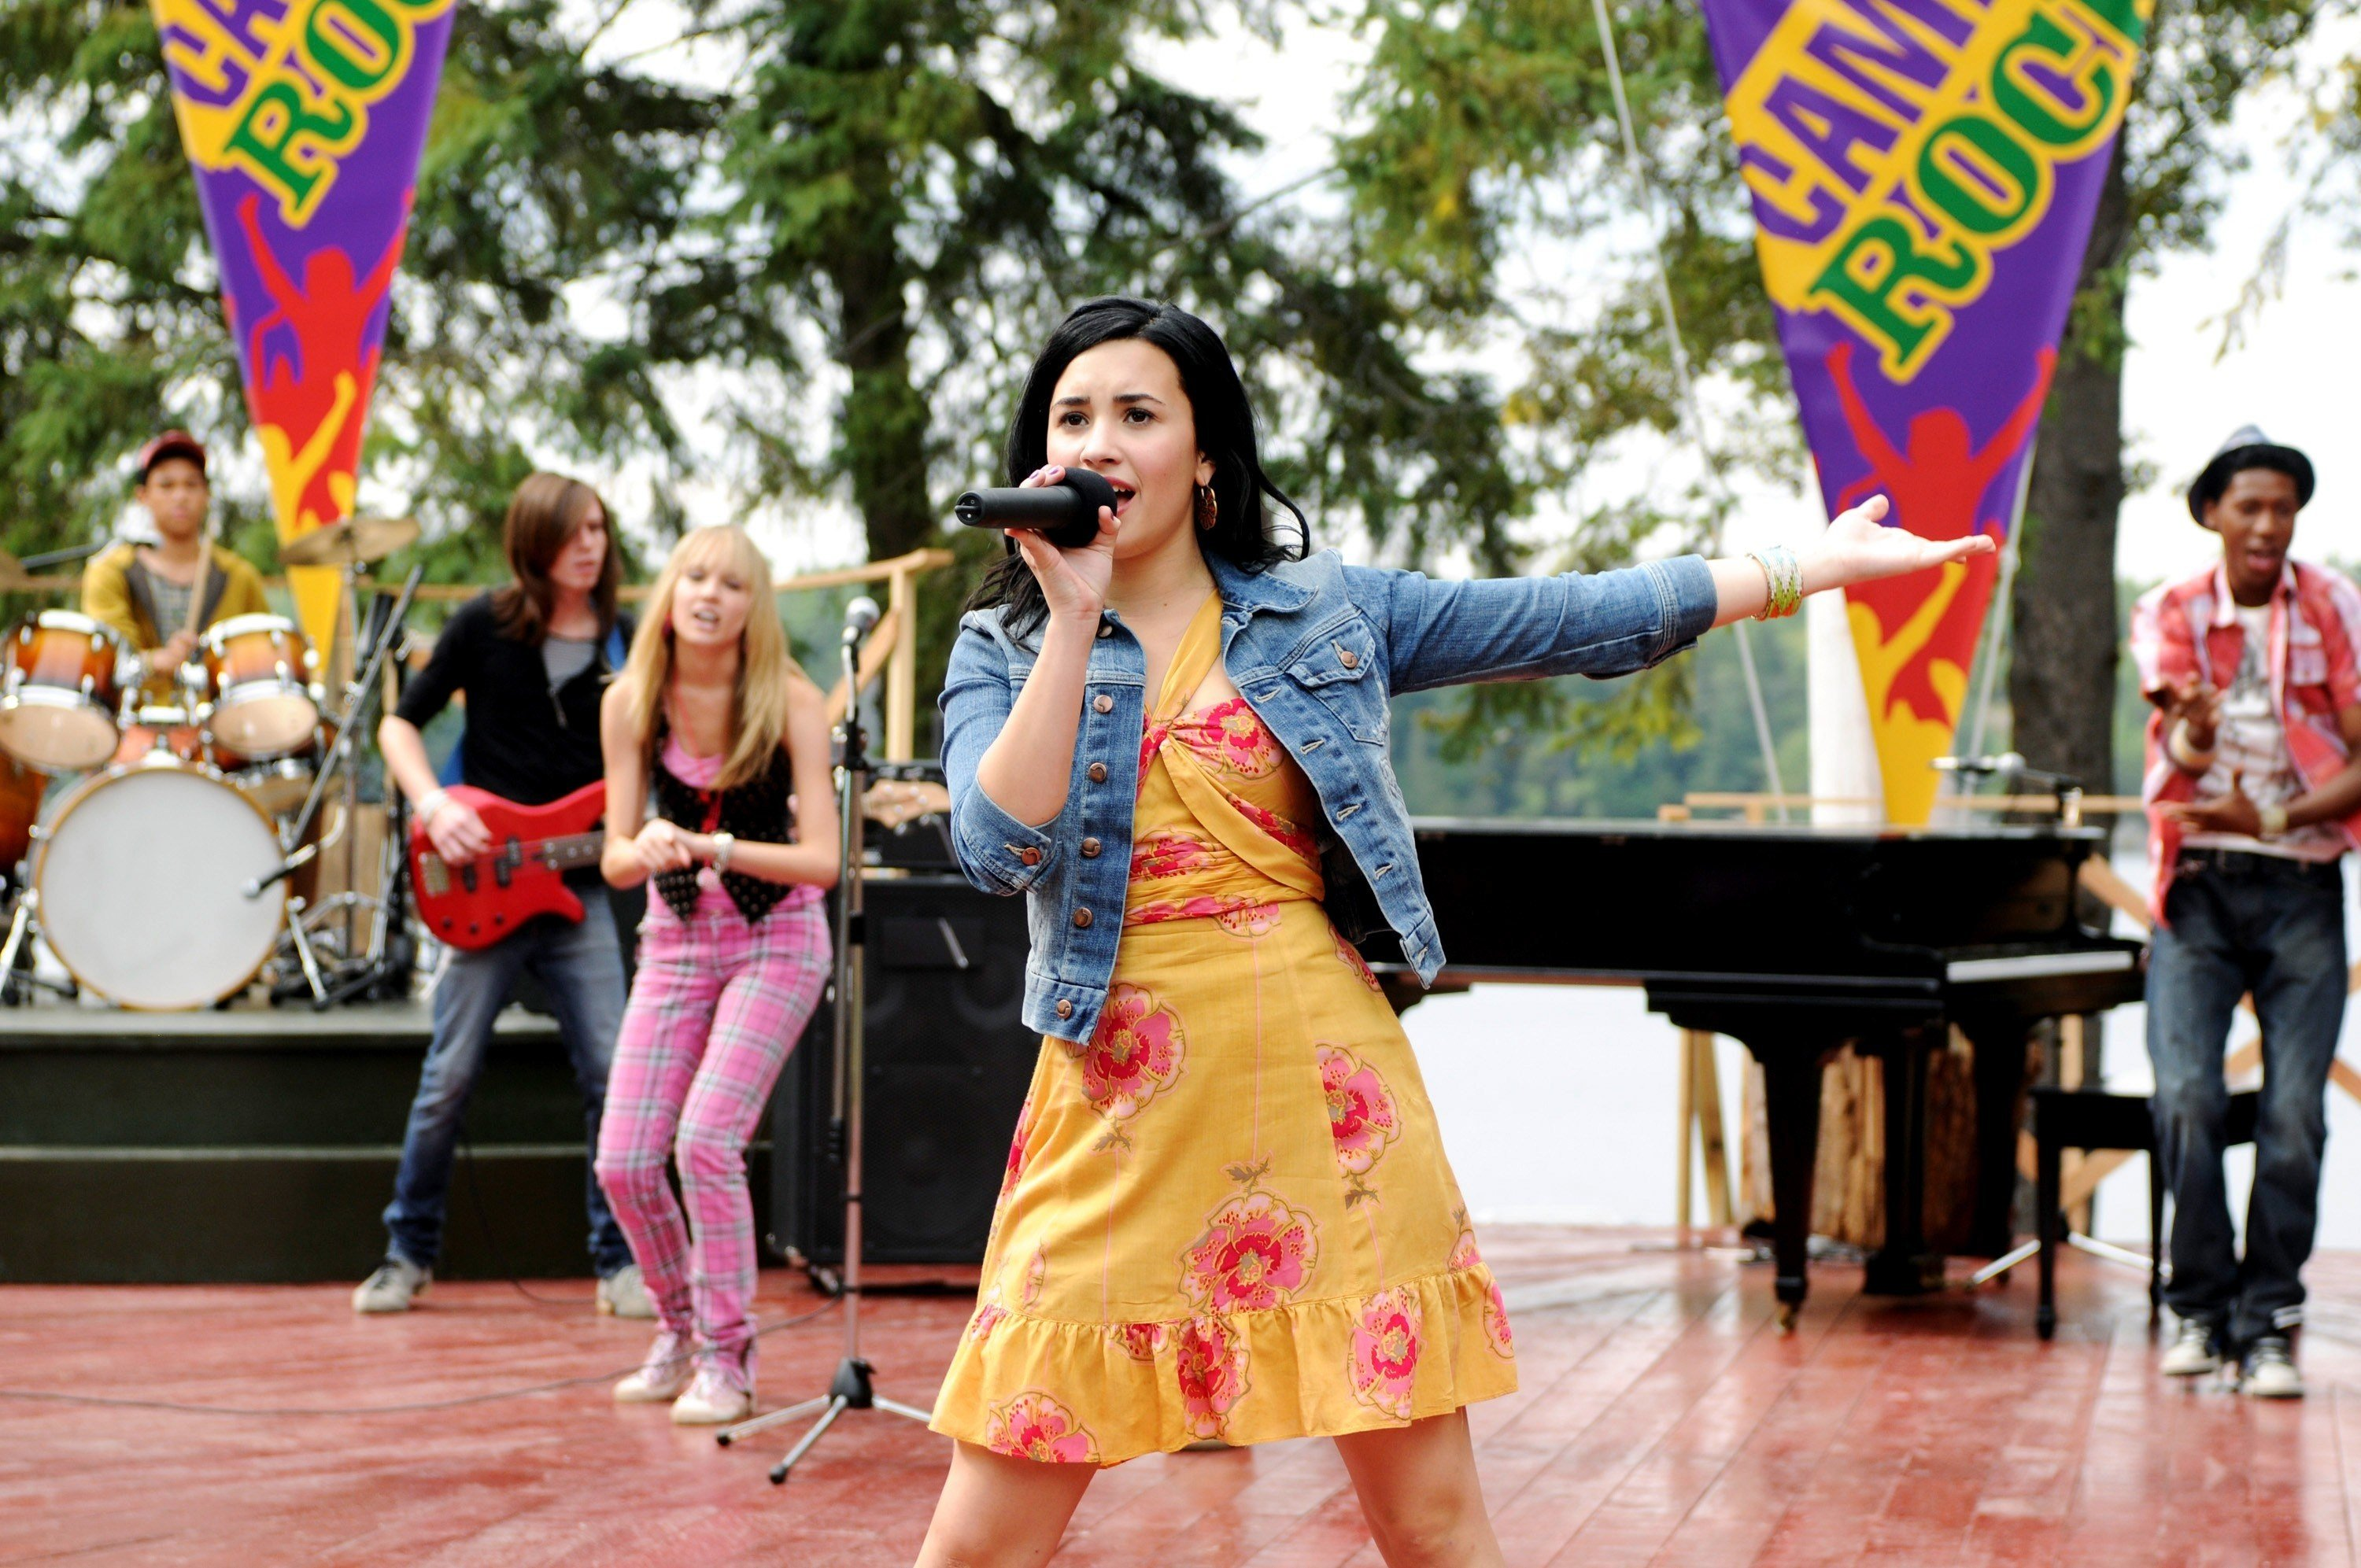 Demi Lovato holding a  mic and performing on stage with a her Camp Rock team